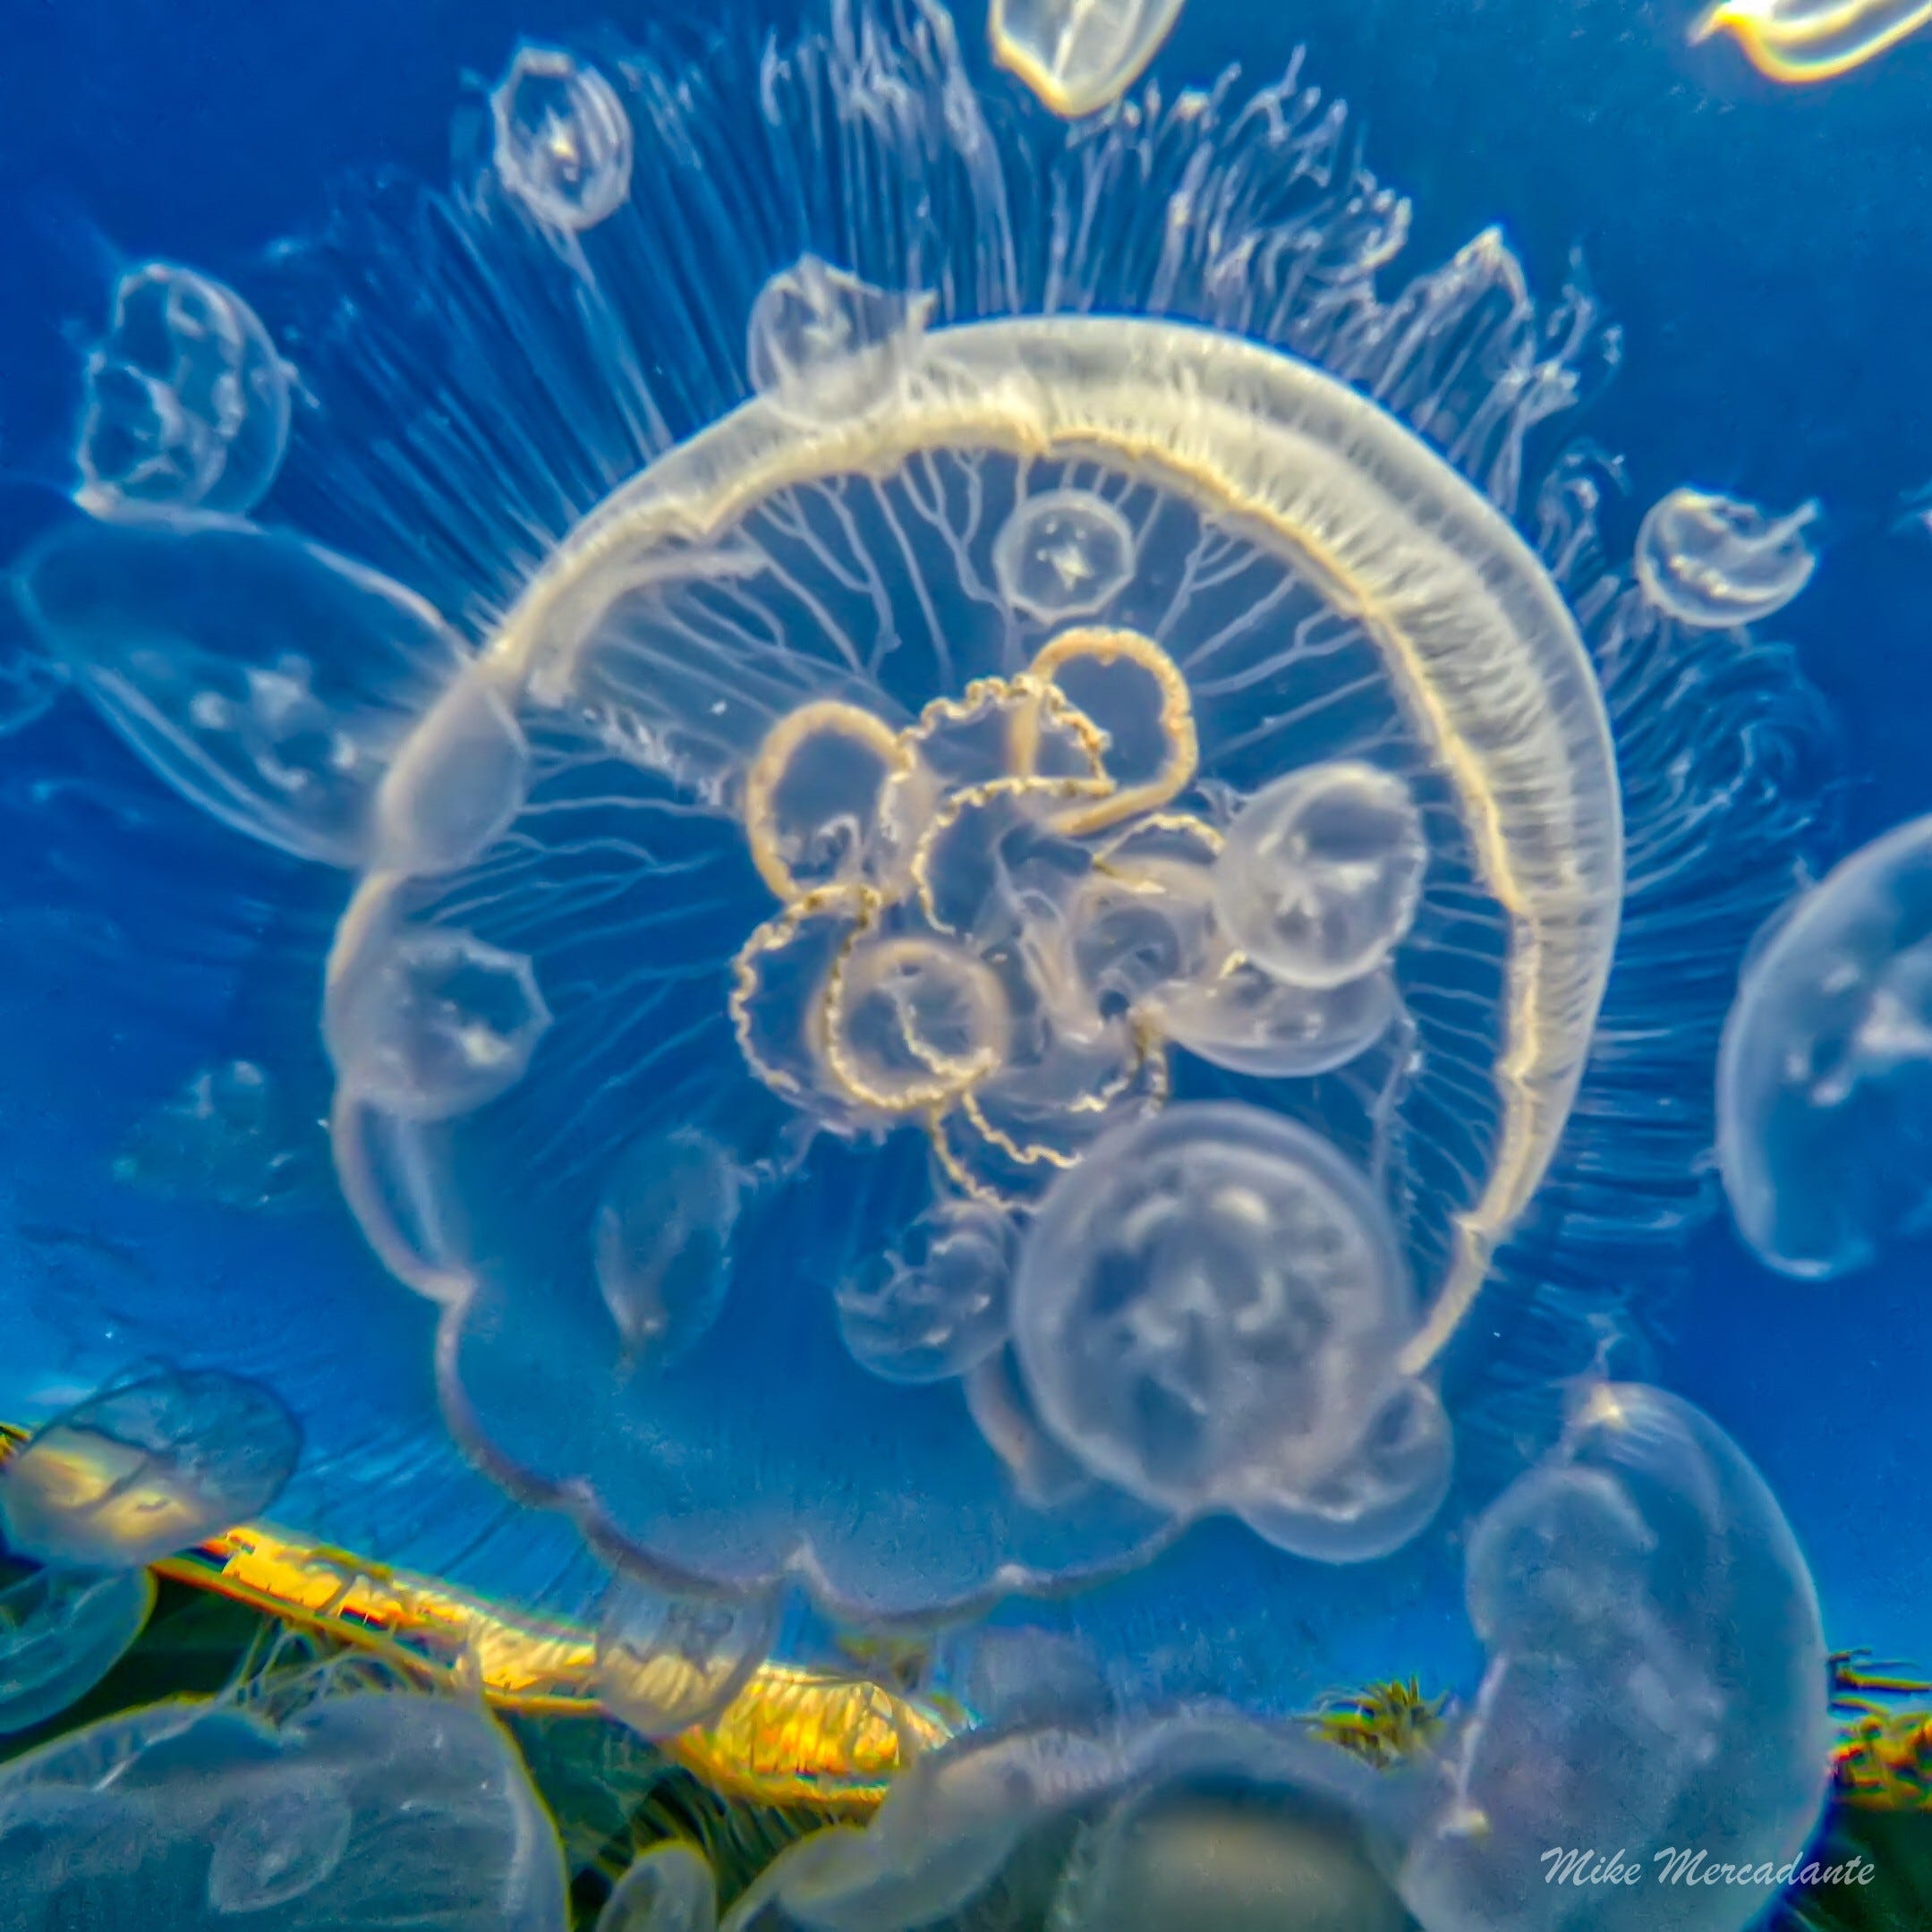 Remember those jellyfish in Oxnard harbor? CSUCI research tells us more about them